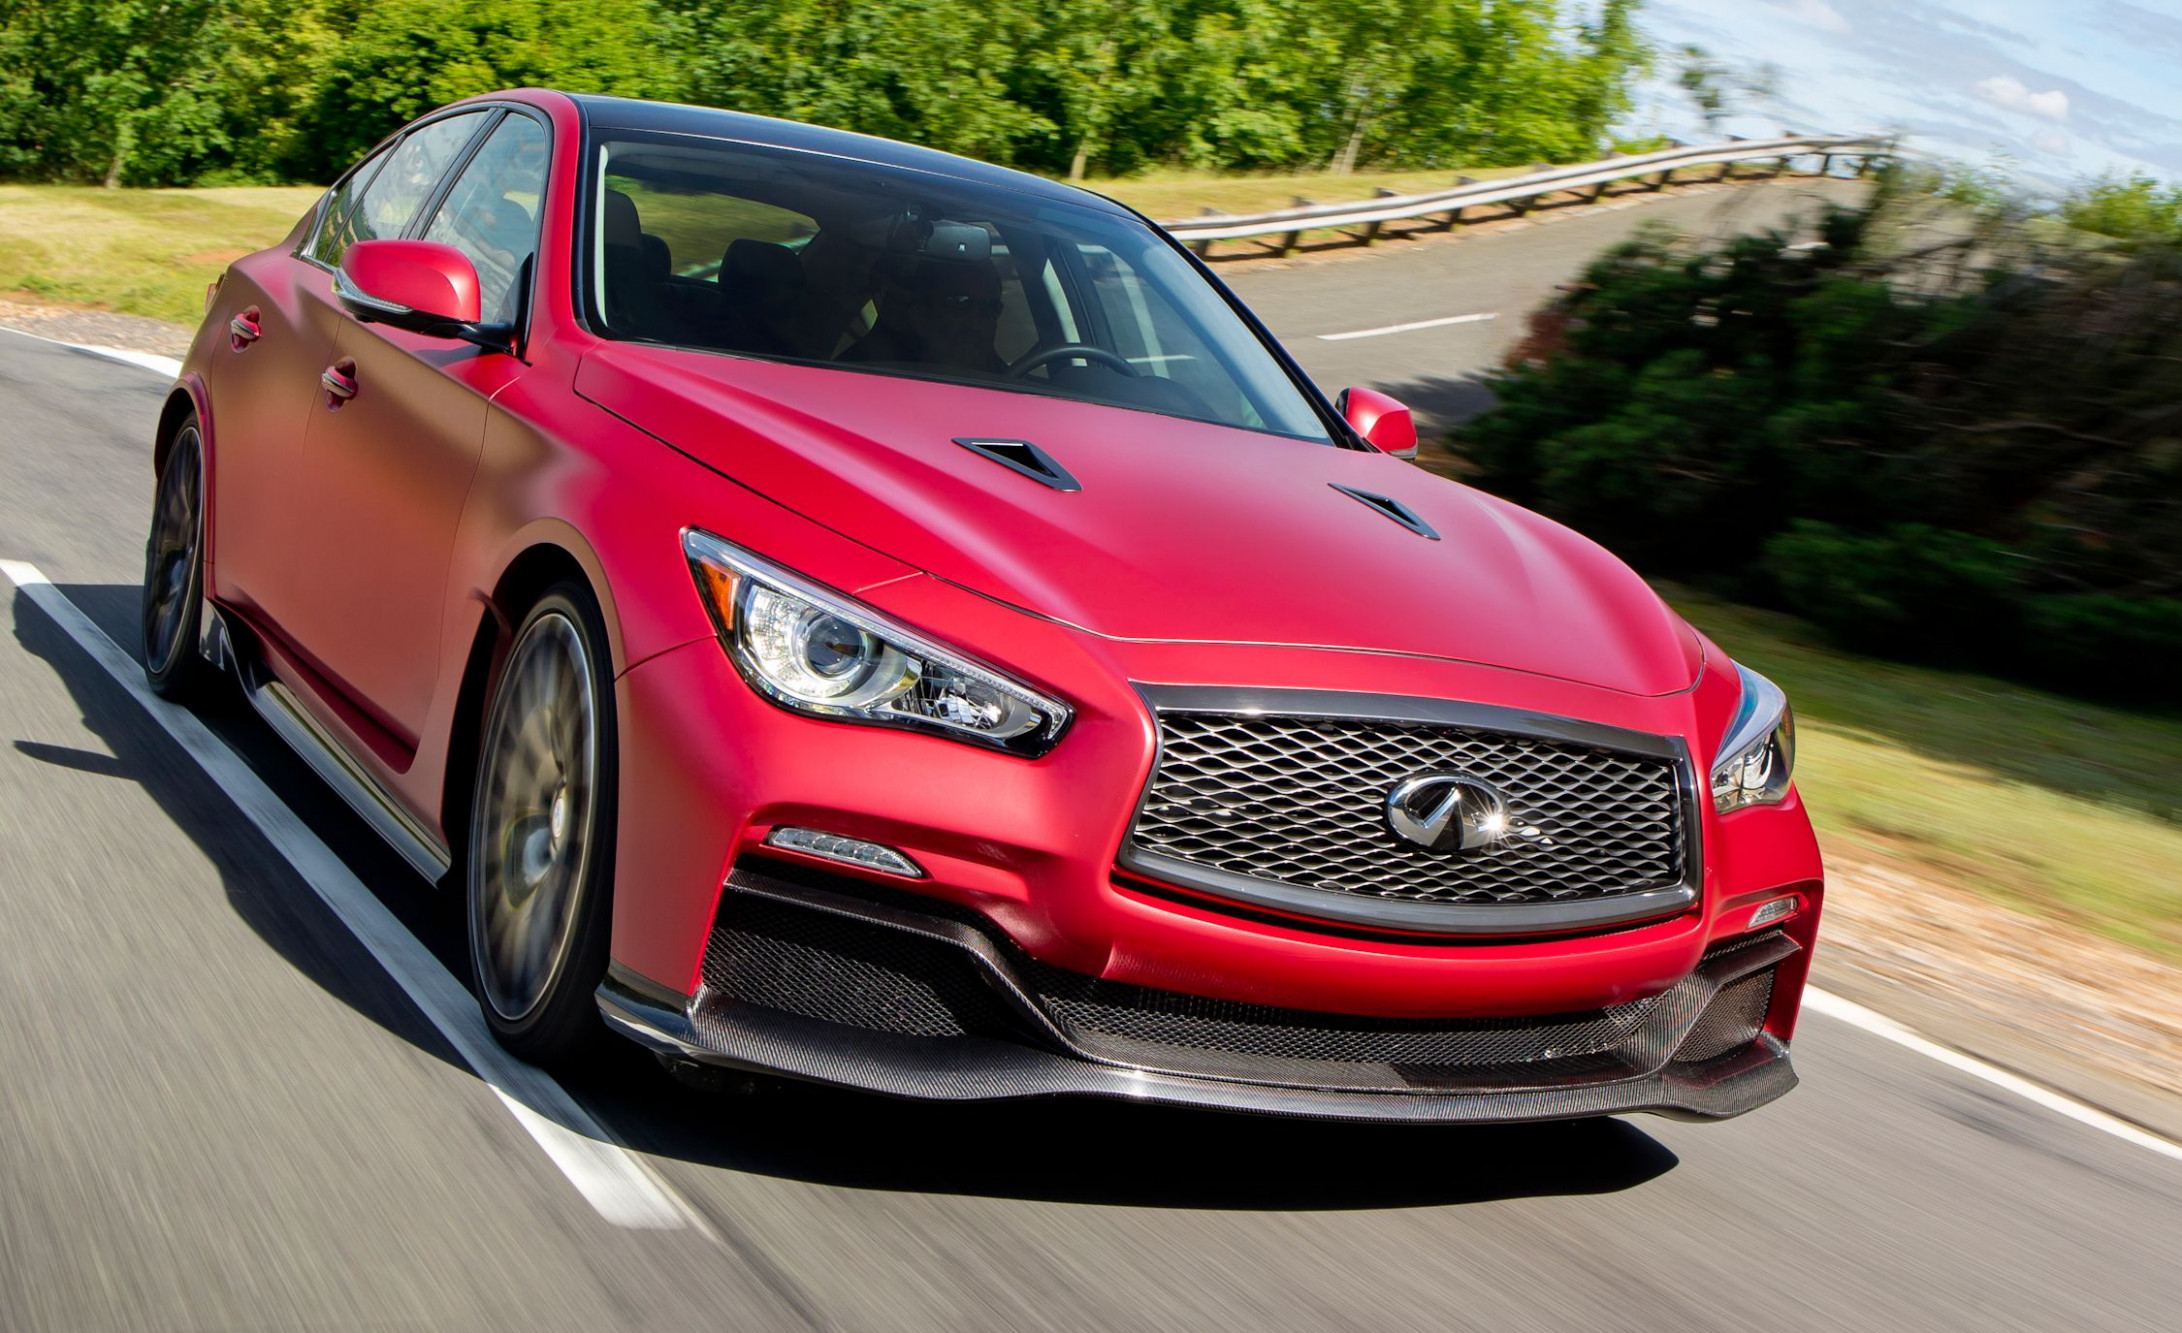 Wallpaper 2022 Infiniti Q50 Coupe Eau Rouge